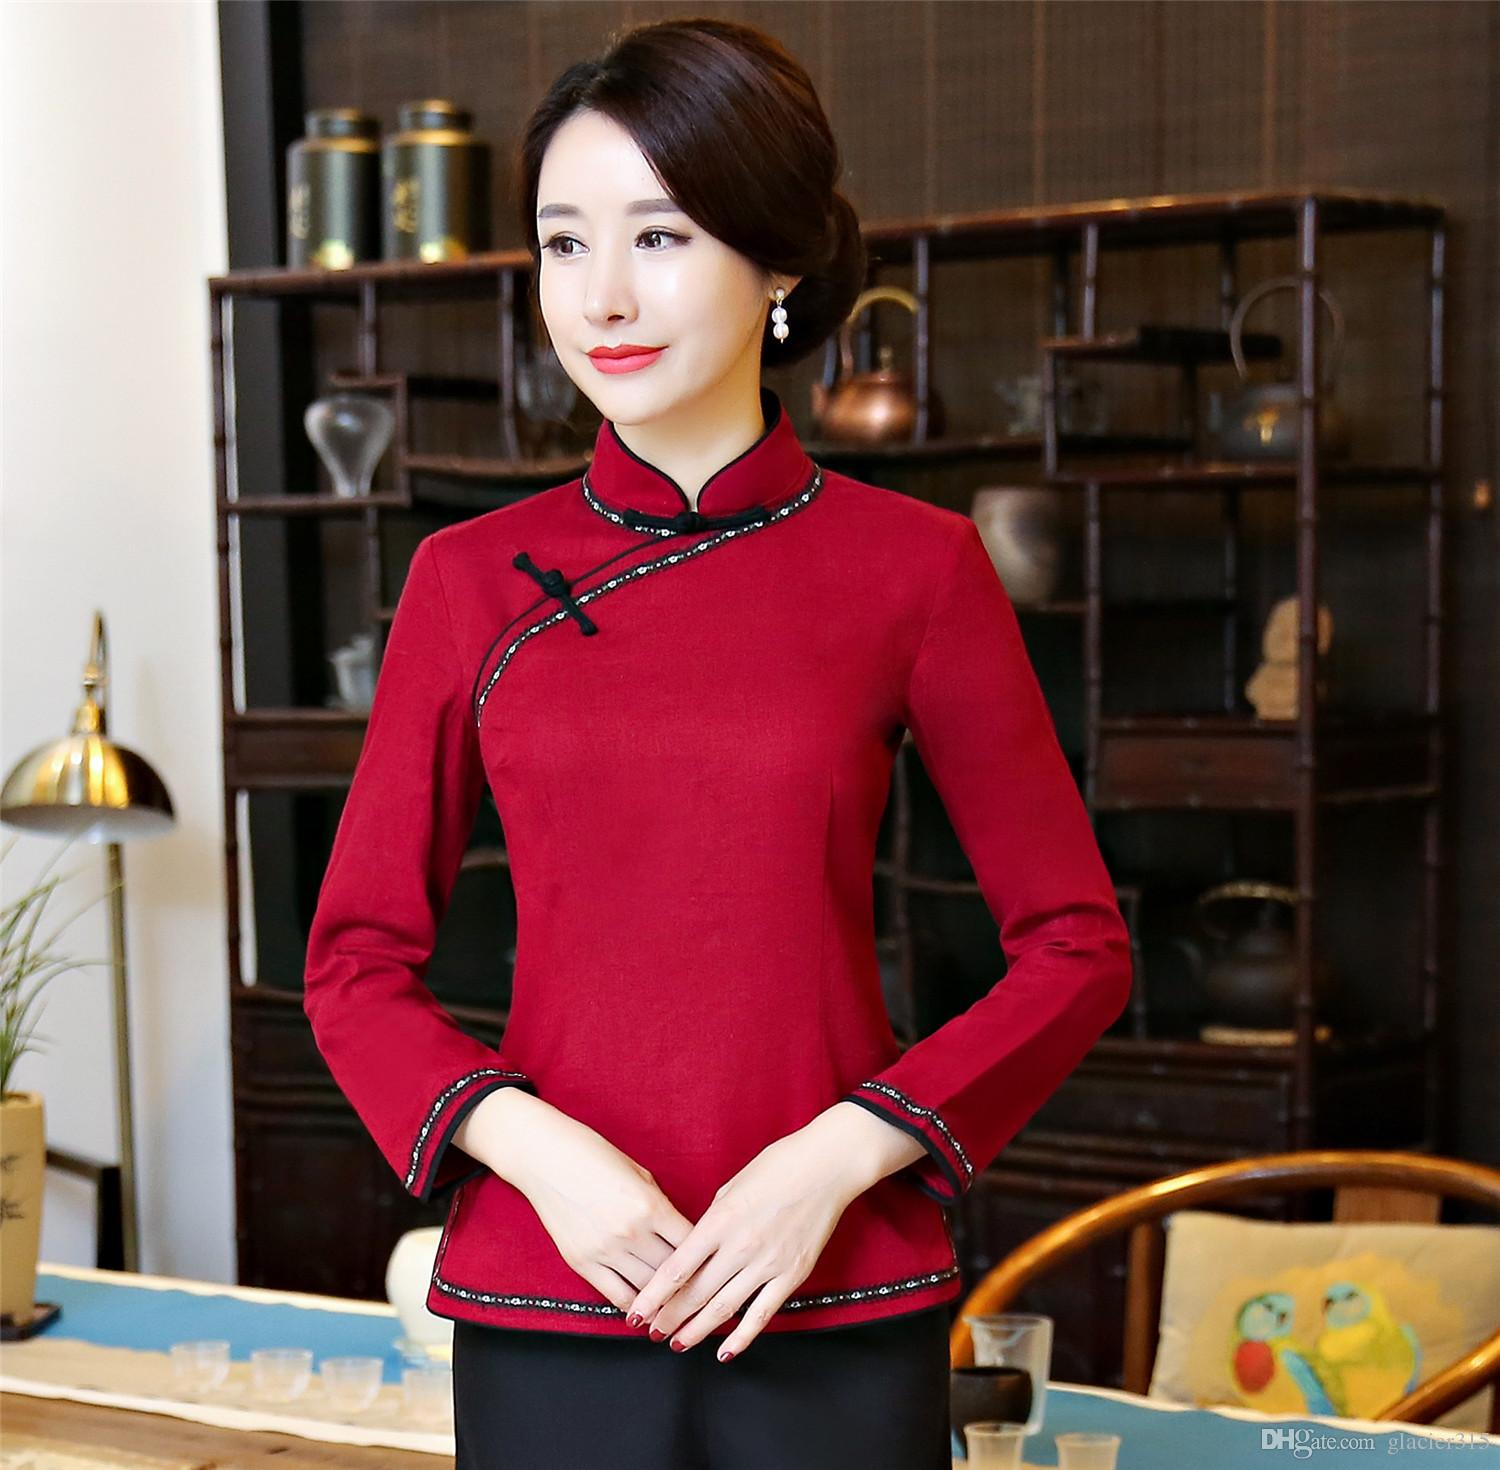 24cfbff4ef Shanghai Story Chinese Standing Collar Woman s Shirt Chinese Traditional Top  Long Sleeve Cheongsam Top Chinese Linen Blouse Chinese Traditional Clothing  ...